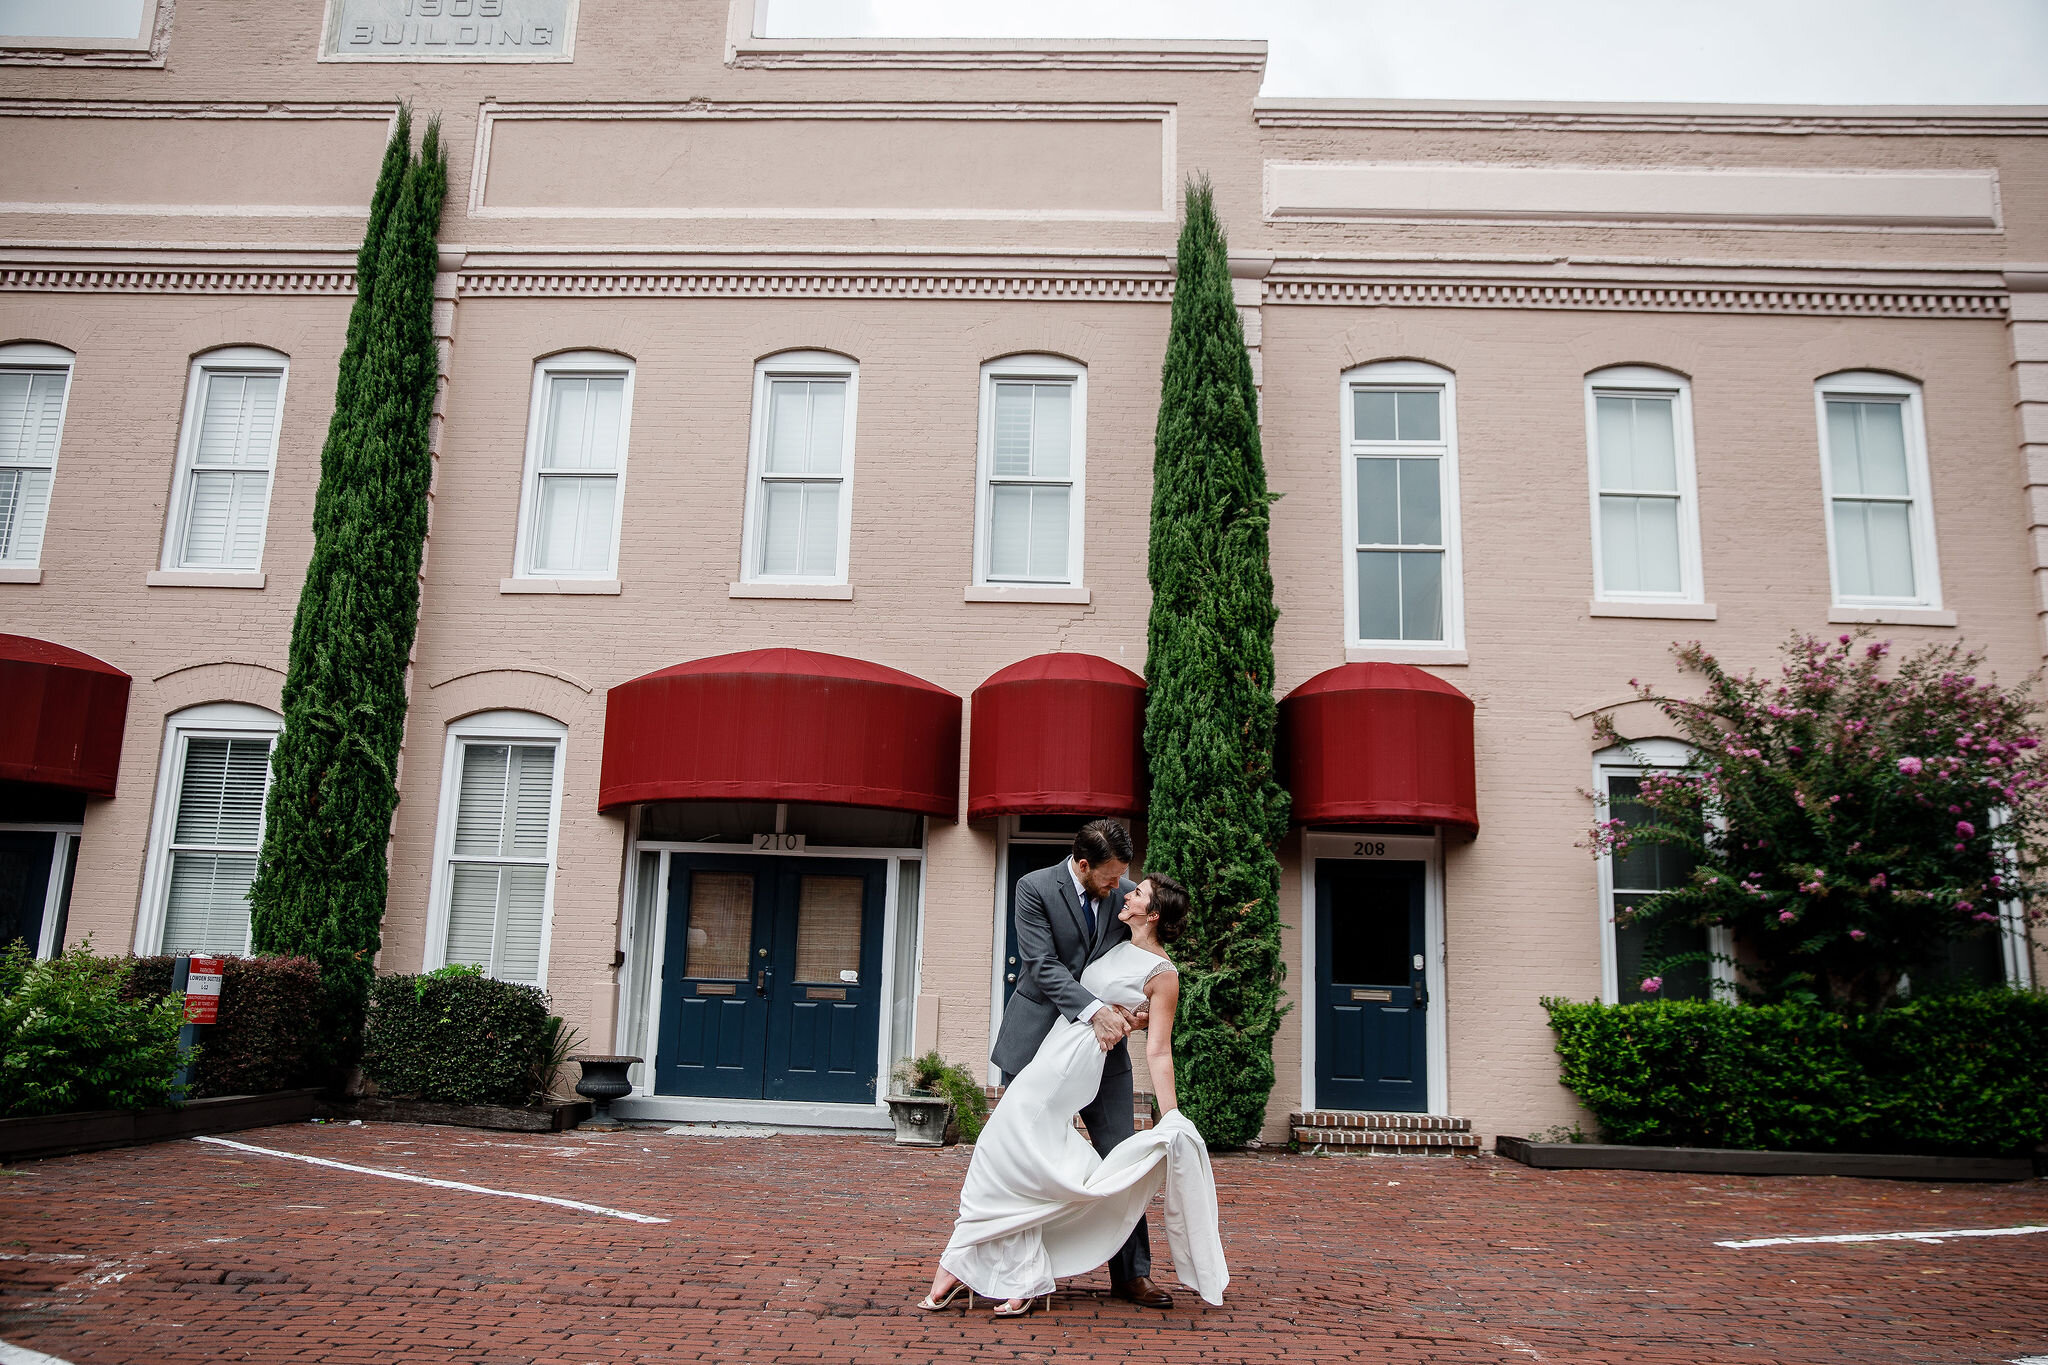 ivory-and-beau-blog-couple-and-florals-shannon-and-mike-wedding-savannah-wedding-planner-savannah-florist-savannah-wedding-southern-florist-southern-wedding-alida-hotel-198.jpg